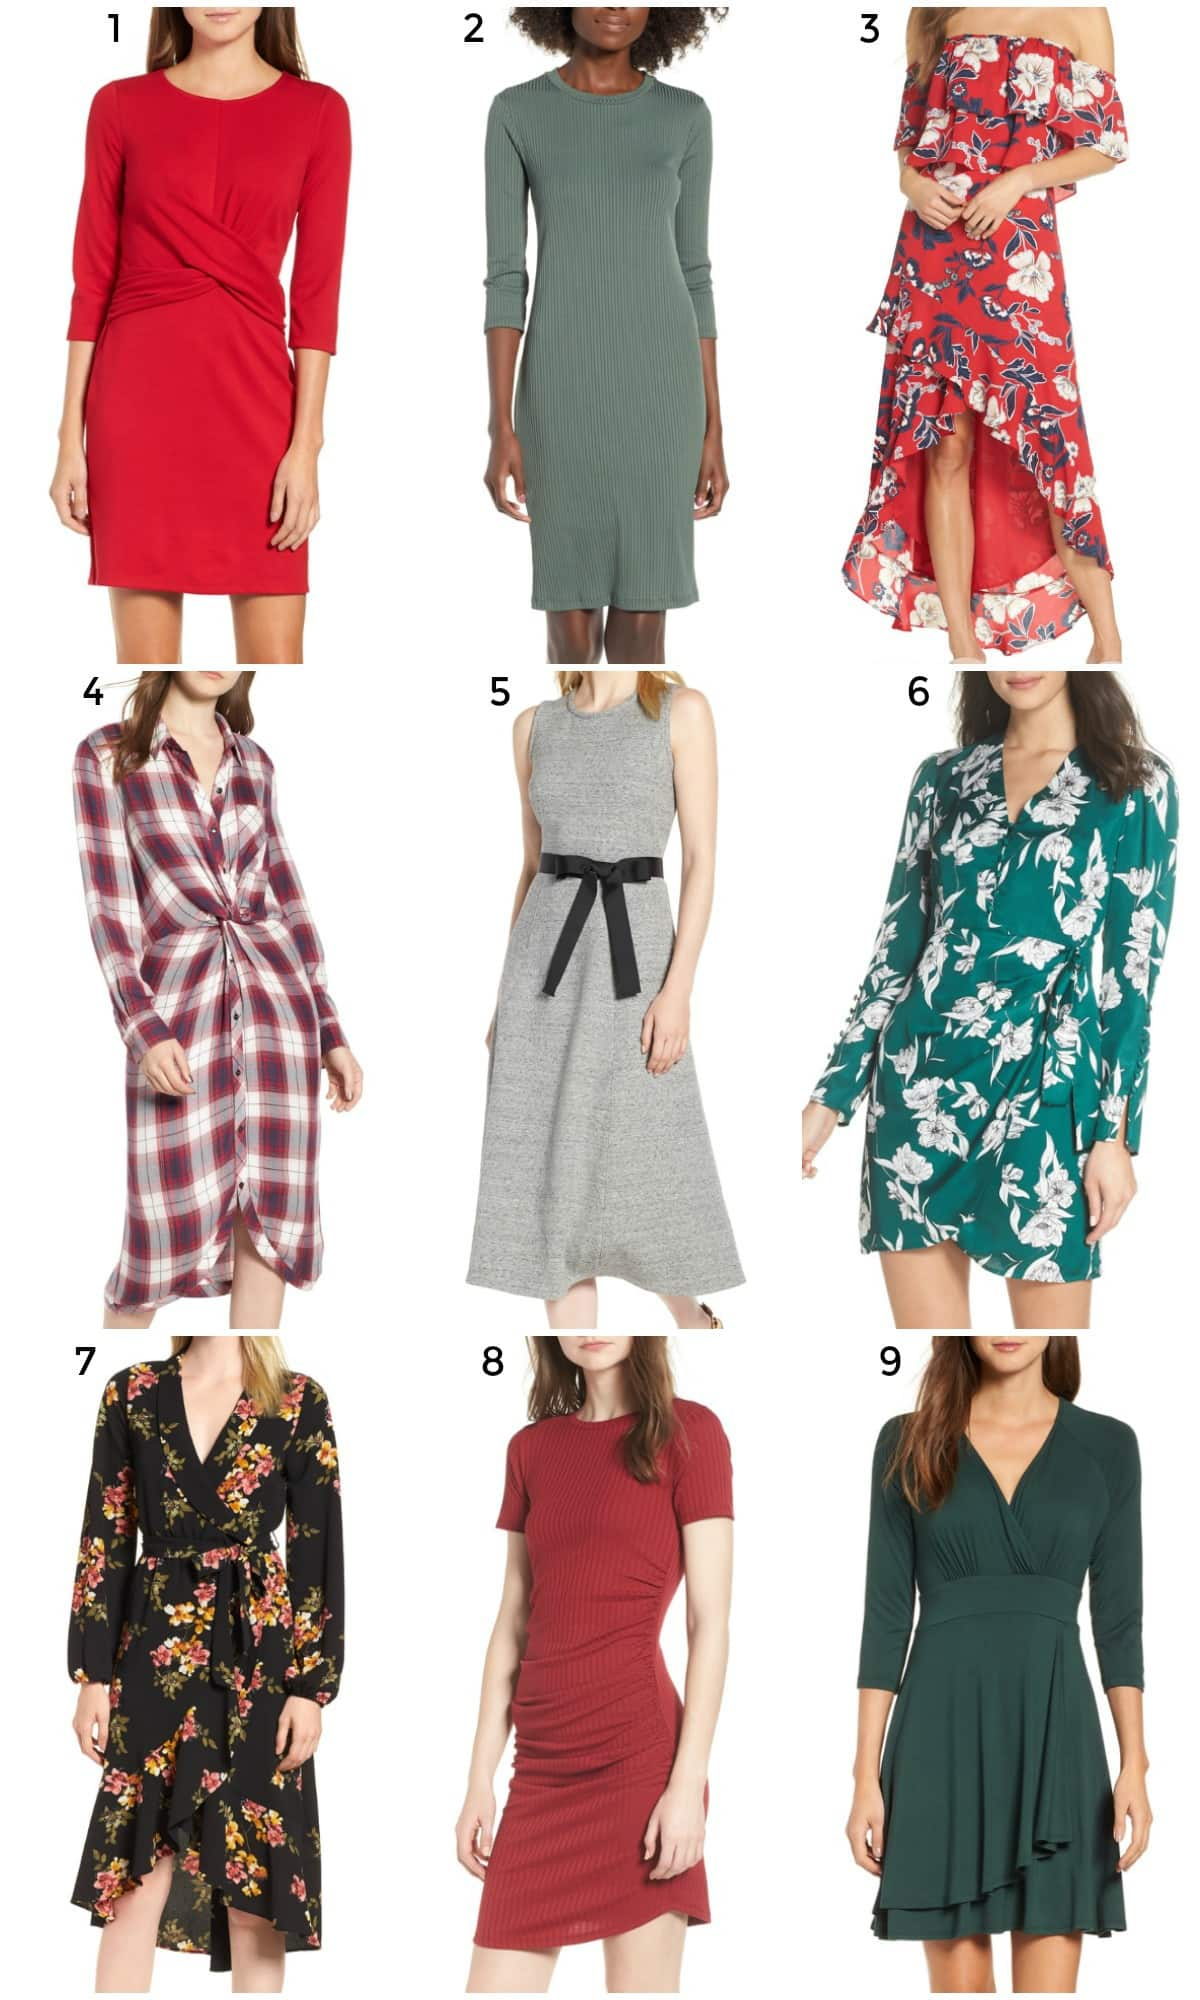 e51c5386d5 Shop The Best Deals from The 2018 Nordstrom Anniversary Sale ...